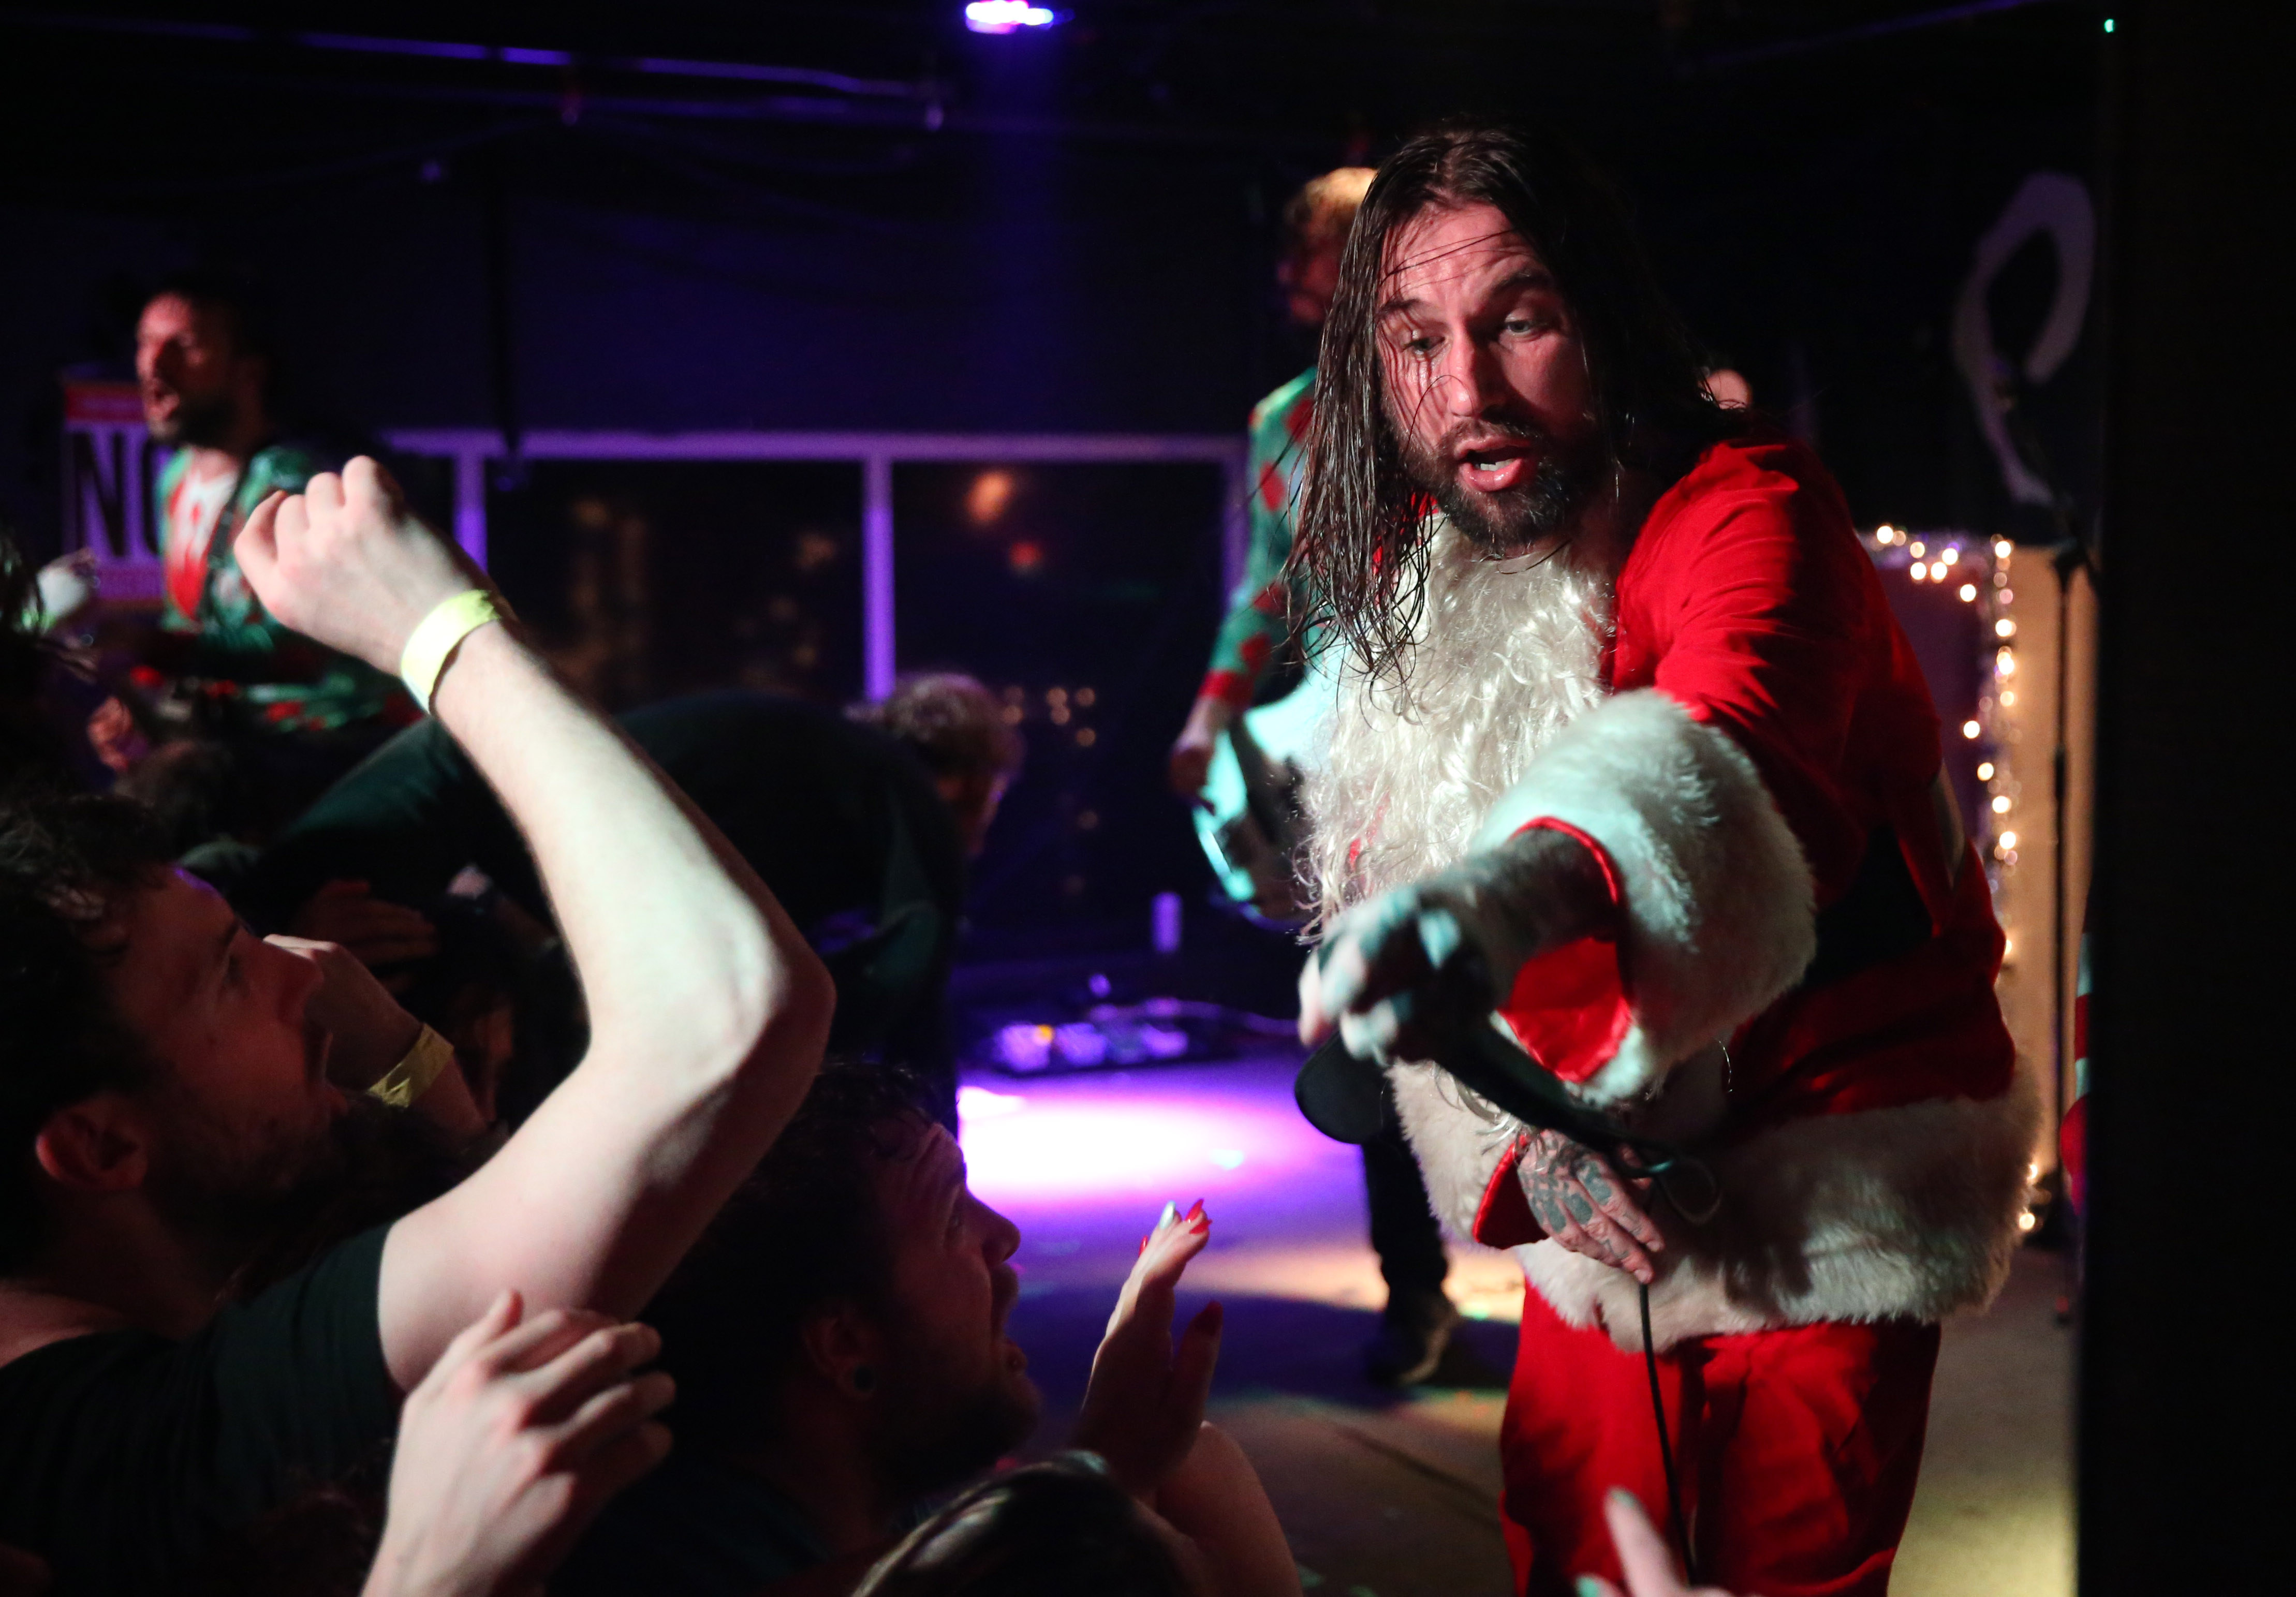 Internationally known Buffalo band Every Time I Die came dressed as Santa and his elves for their annual Christmas show. Here, lead singer Keith Buckley as Santa.  (Sharon Cantillon/Buffalo News)